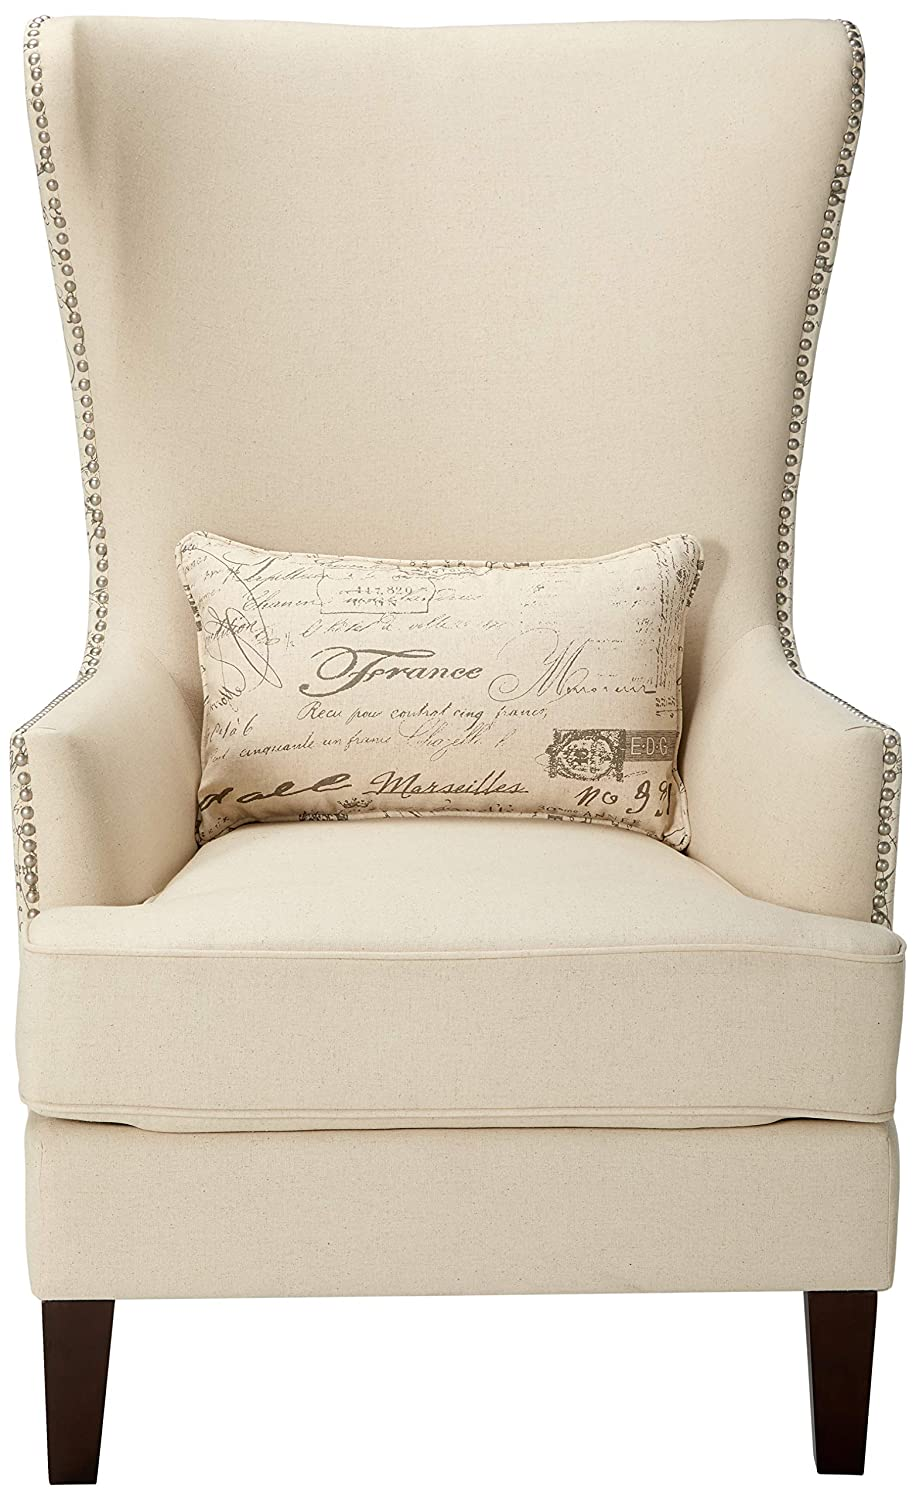 Coaster Home Furnishings 904047 Coaster Traditional Cream Winged Accent Chair with Script Back, 33.5x30.5x48, Brown